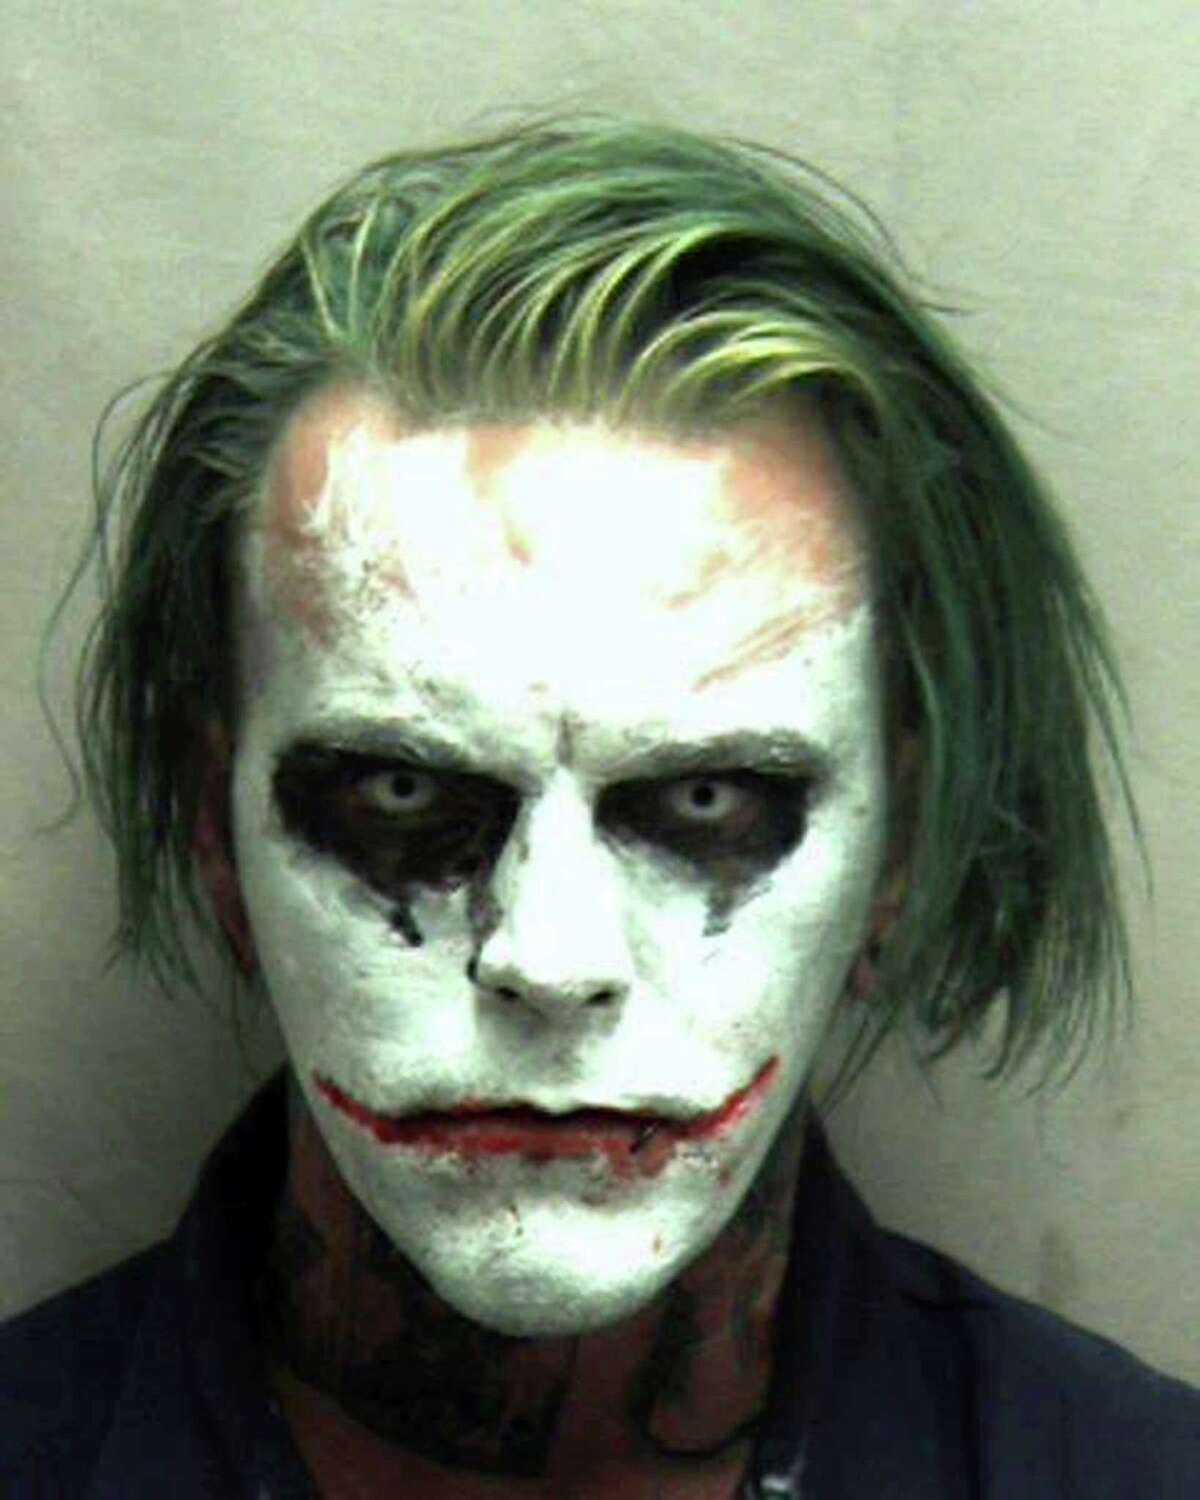 This photo provided by the Winchester Police Department shows Jeremy Putman, who police in Winchester, Va., arrested Friday after callers reported seeing him walking, wearing a cape, carrying a sword and made up as the Batman villain the Joker. Authorities charged Putman with wearing a mask in public, a felony that can result in a sentence of a year in jail.